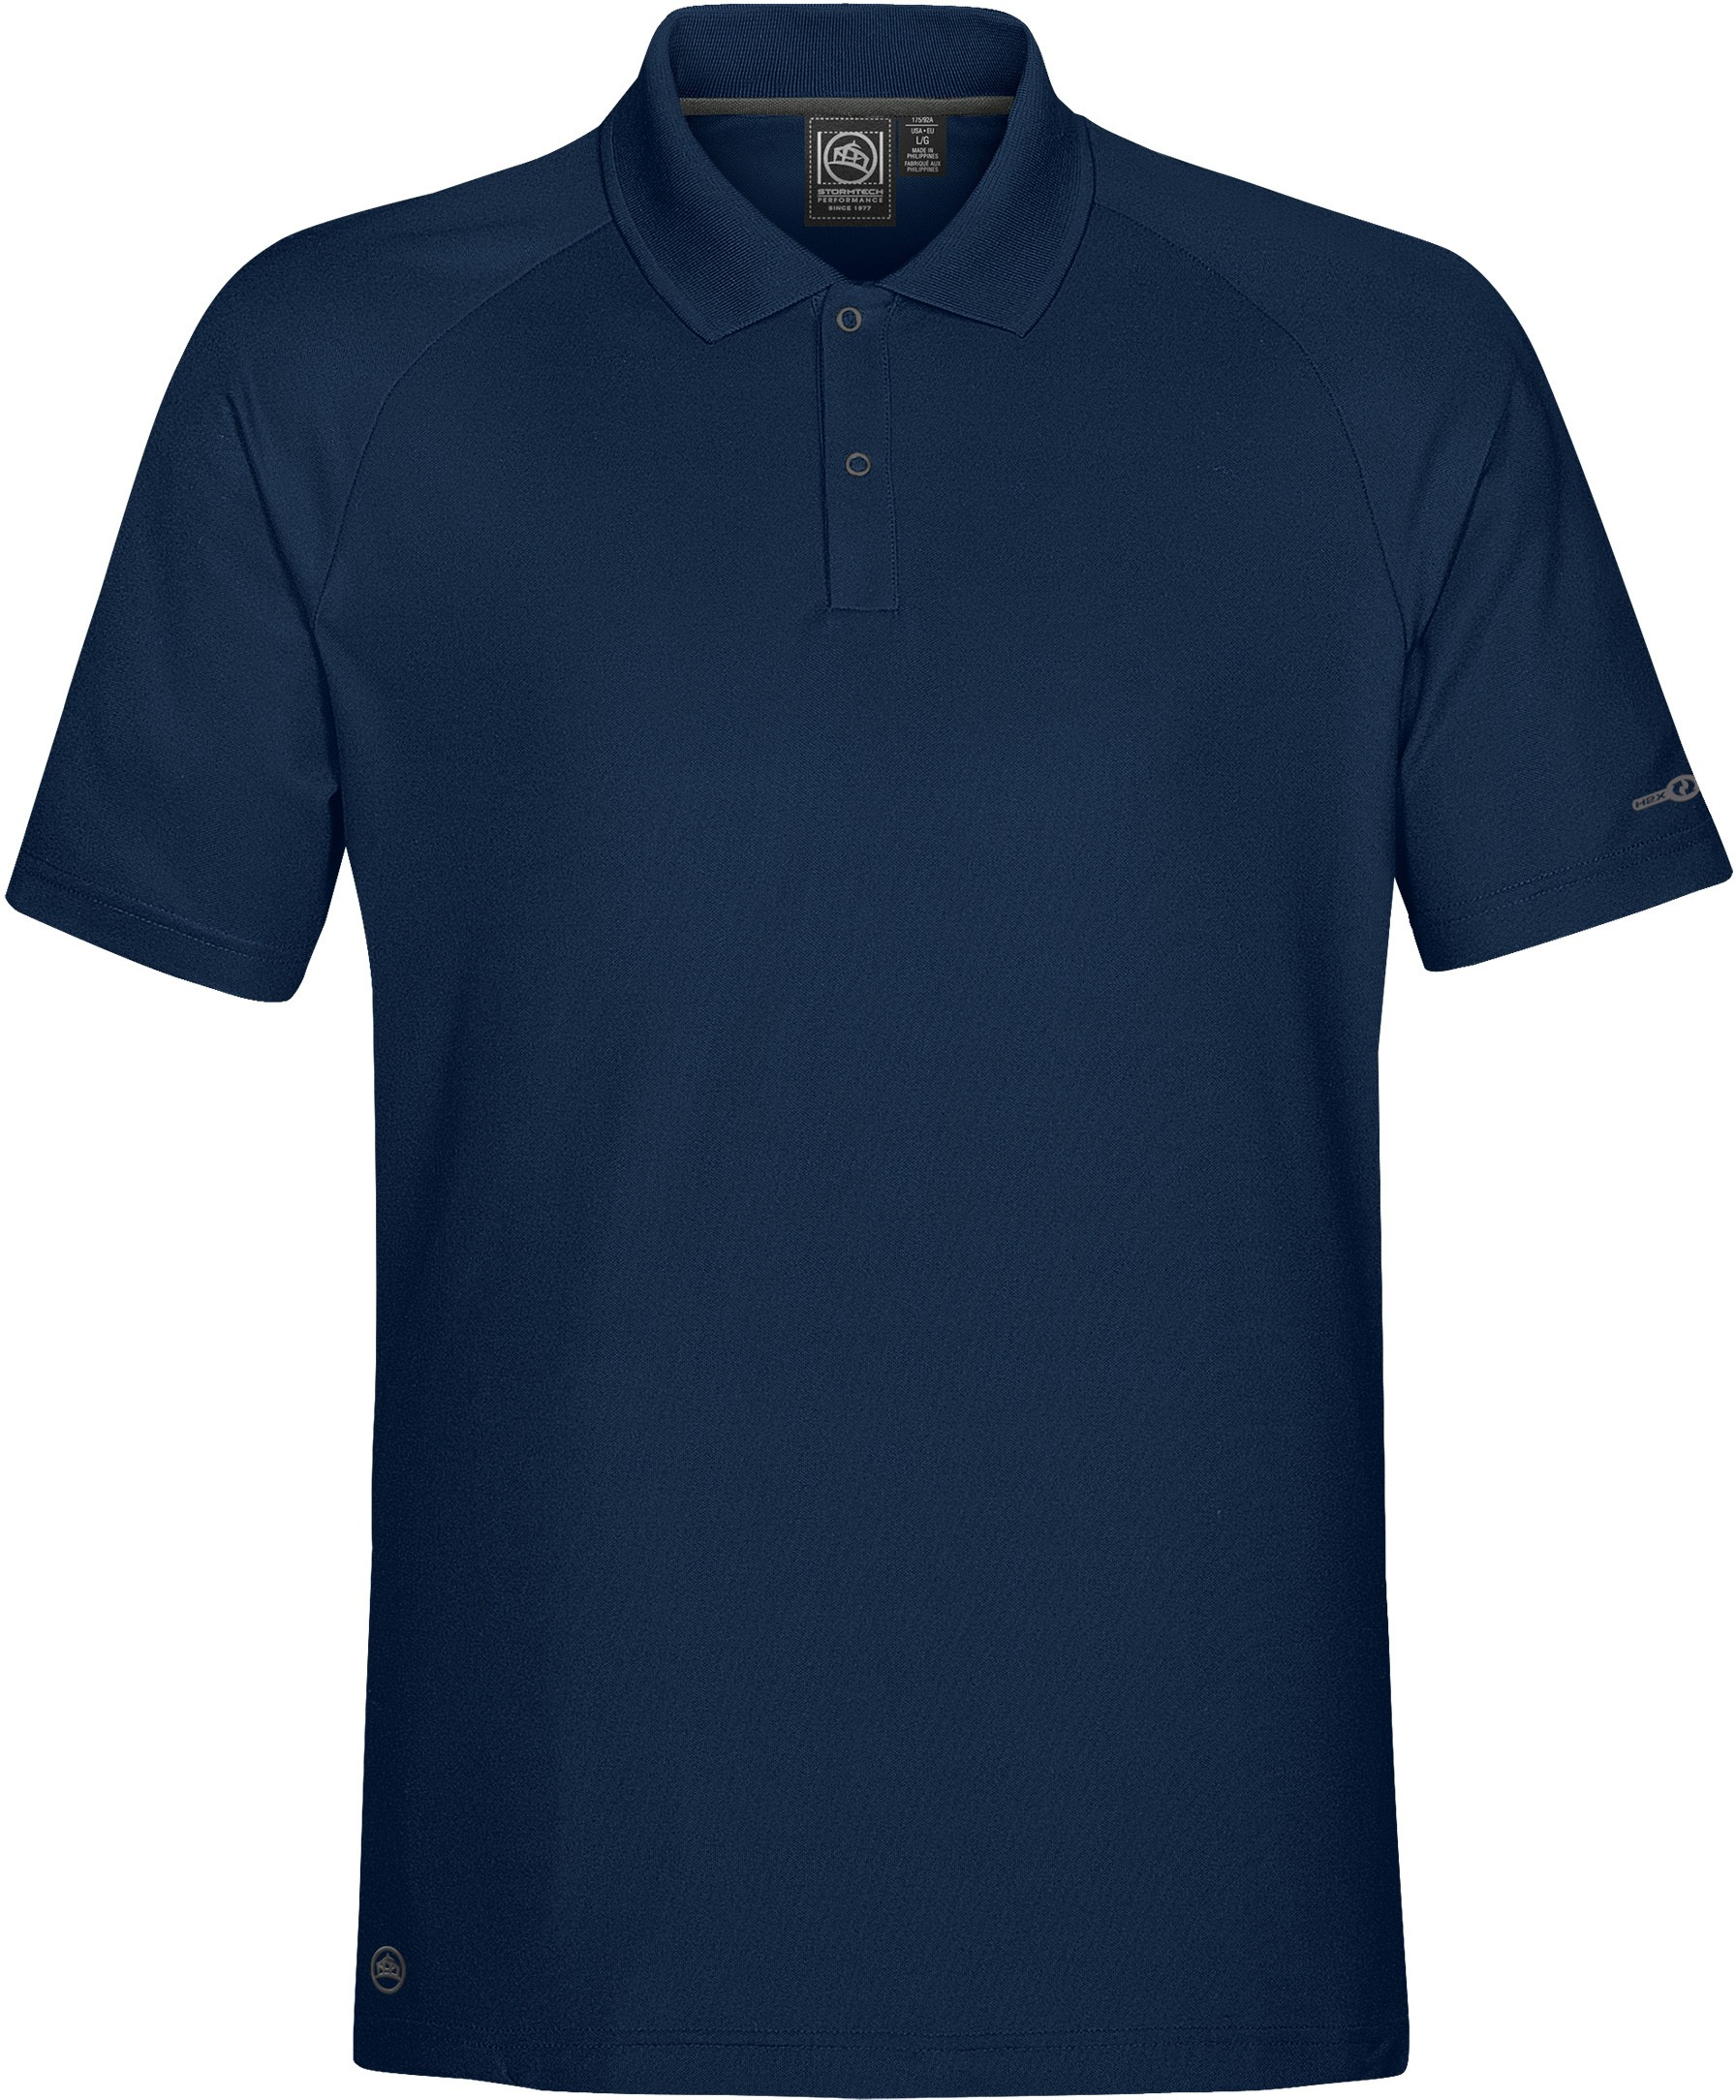 Men's Epic Performance Polo